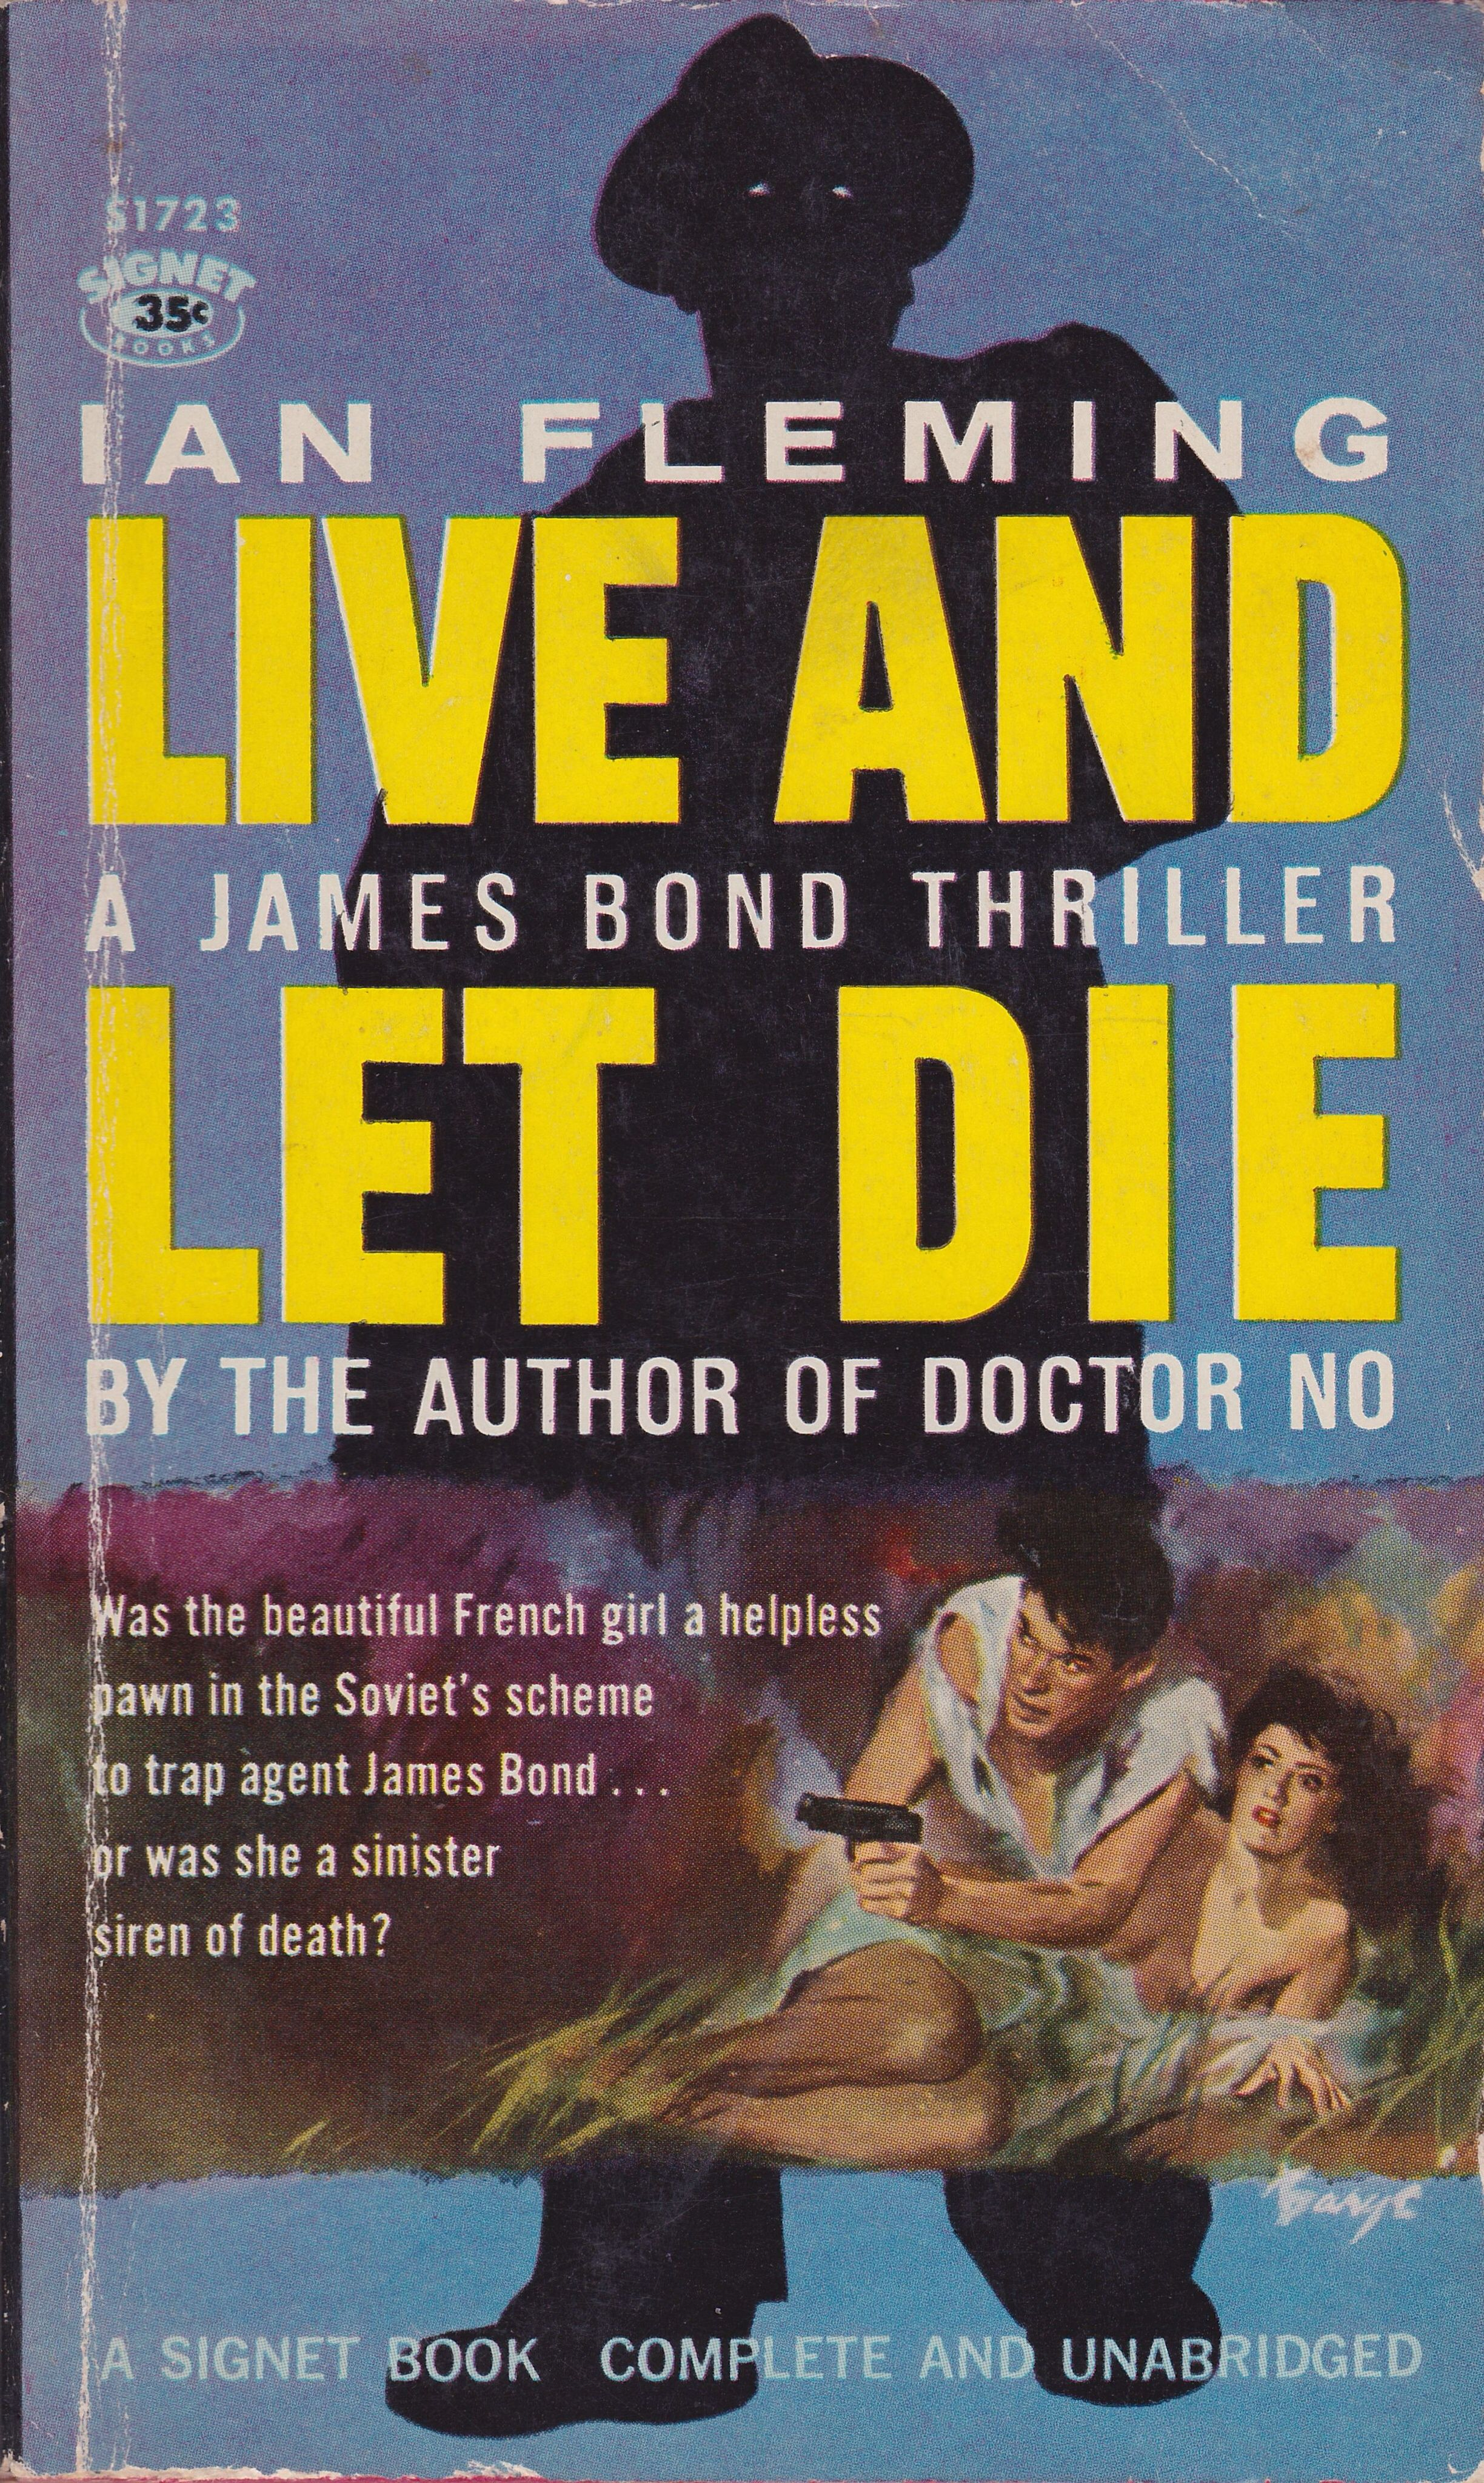 Ian Fleming Live And Let Die Signet Books 1959 Cover Art By